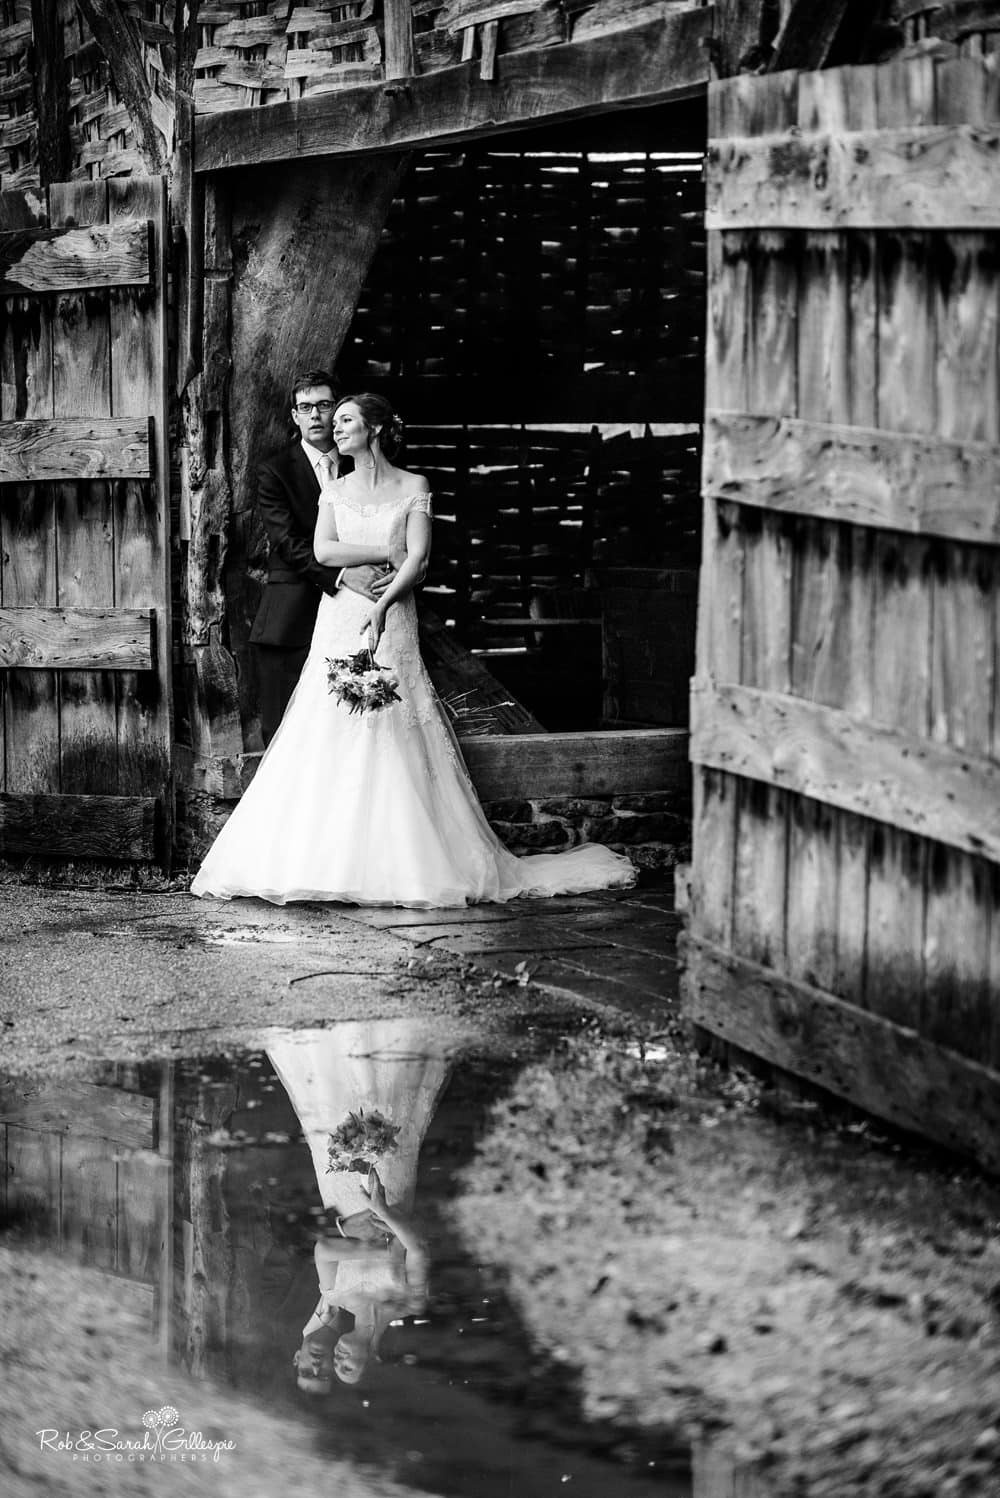 Bride and groom in Threshing Barn at Avoncroft Museum